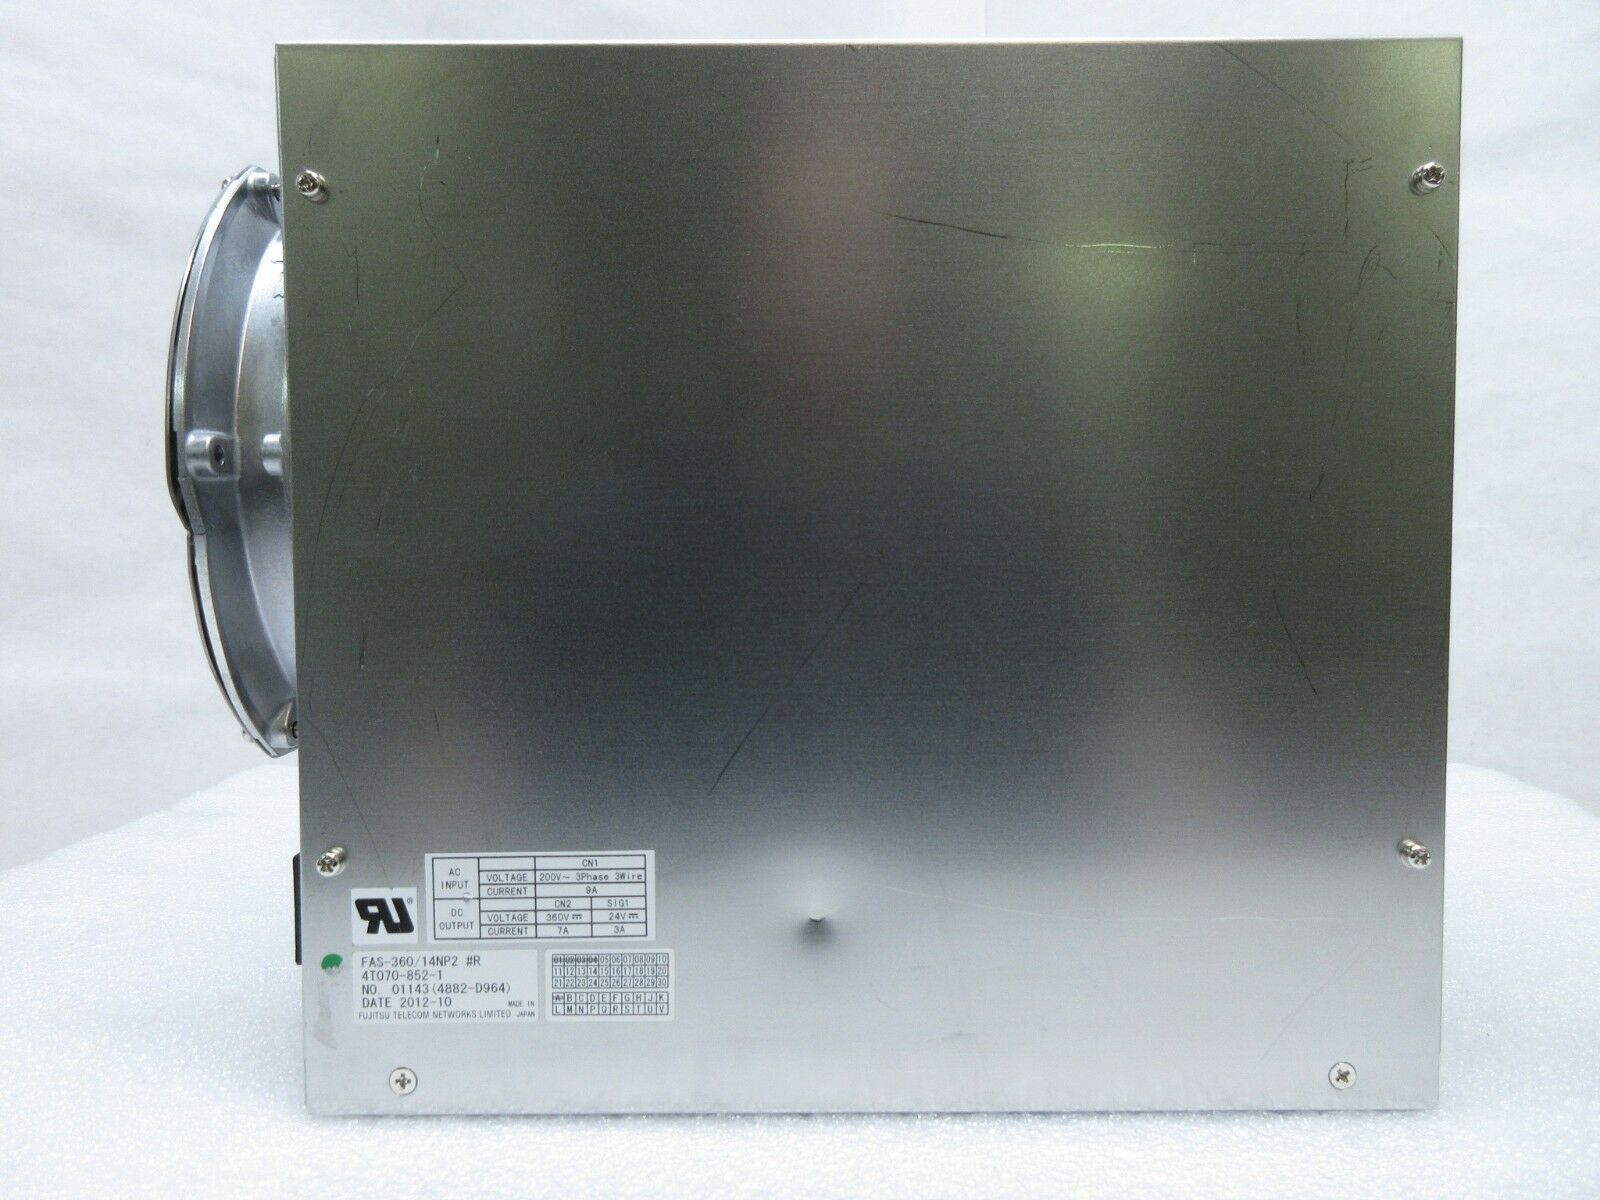 Fujitsu FAS-360/14NP2 Power Supply Nikon 4T070-852-1 NSR-S620D Immersion Used